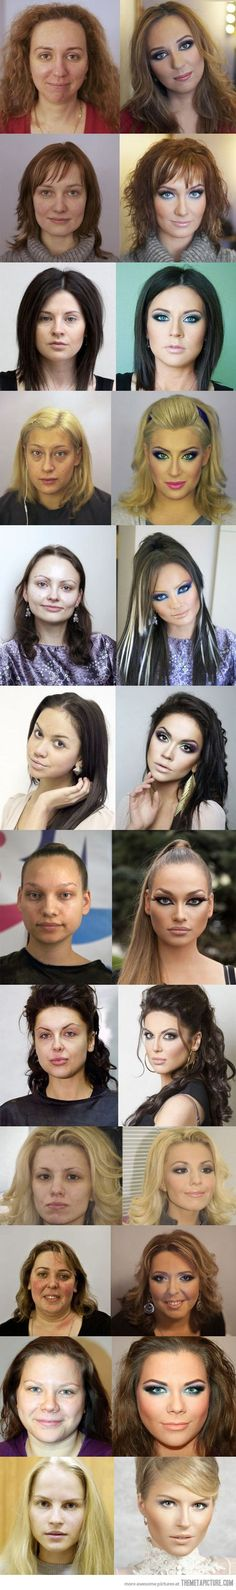 "It""s amazing what make-up can do!"